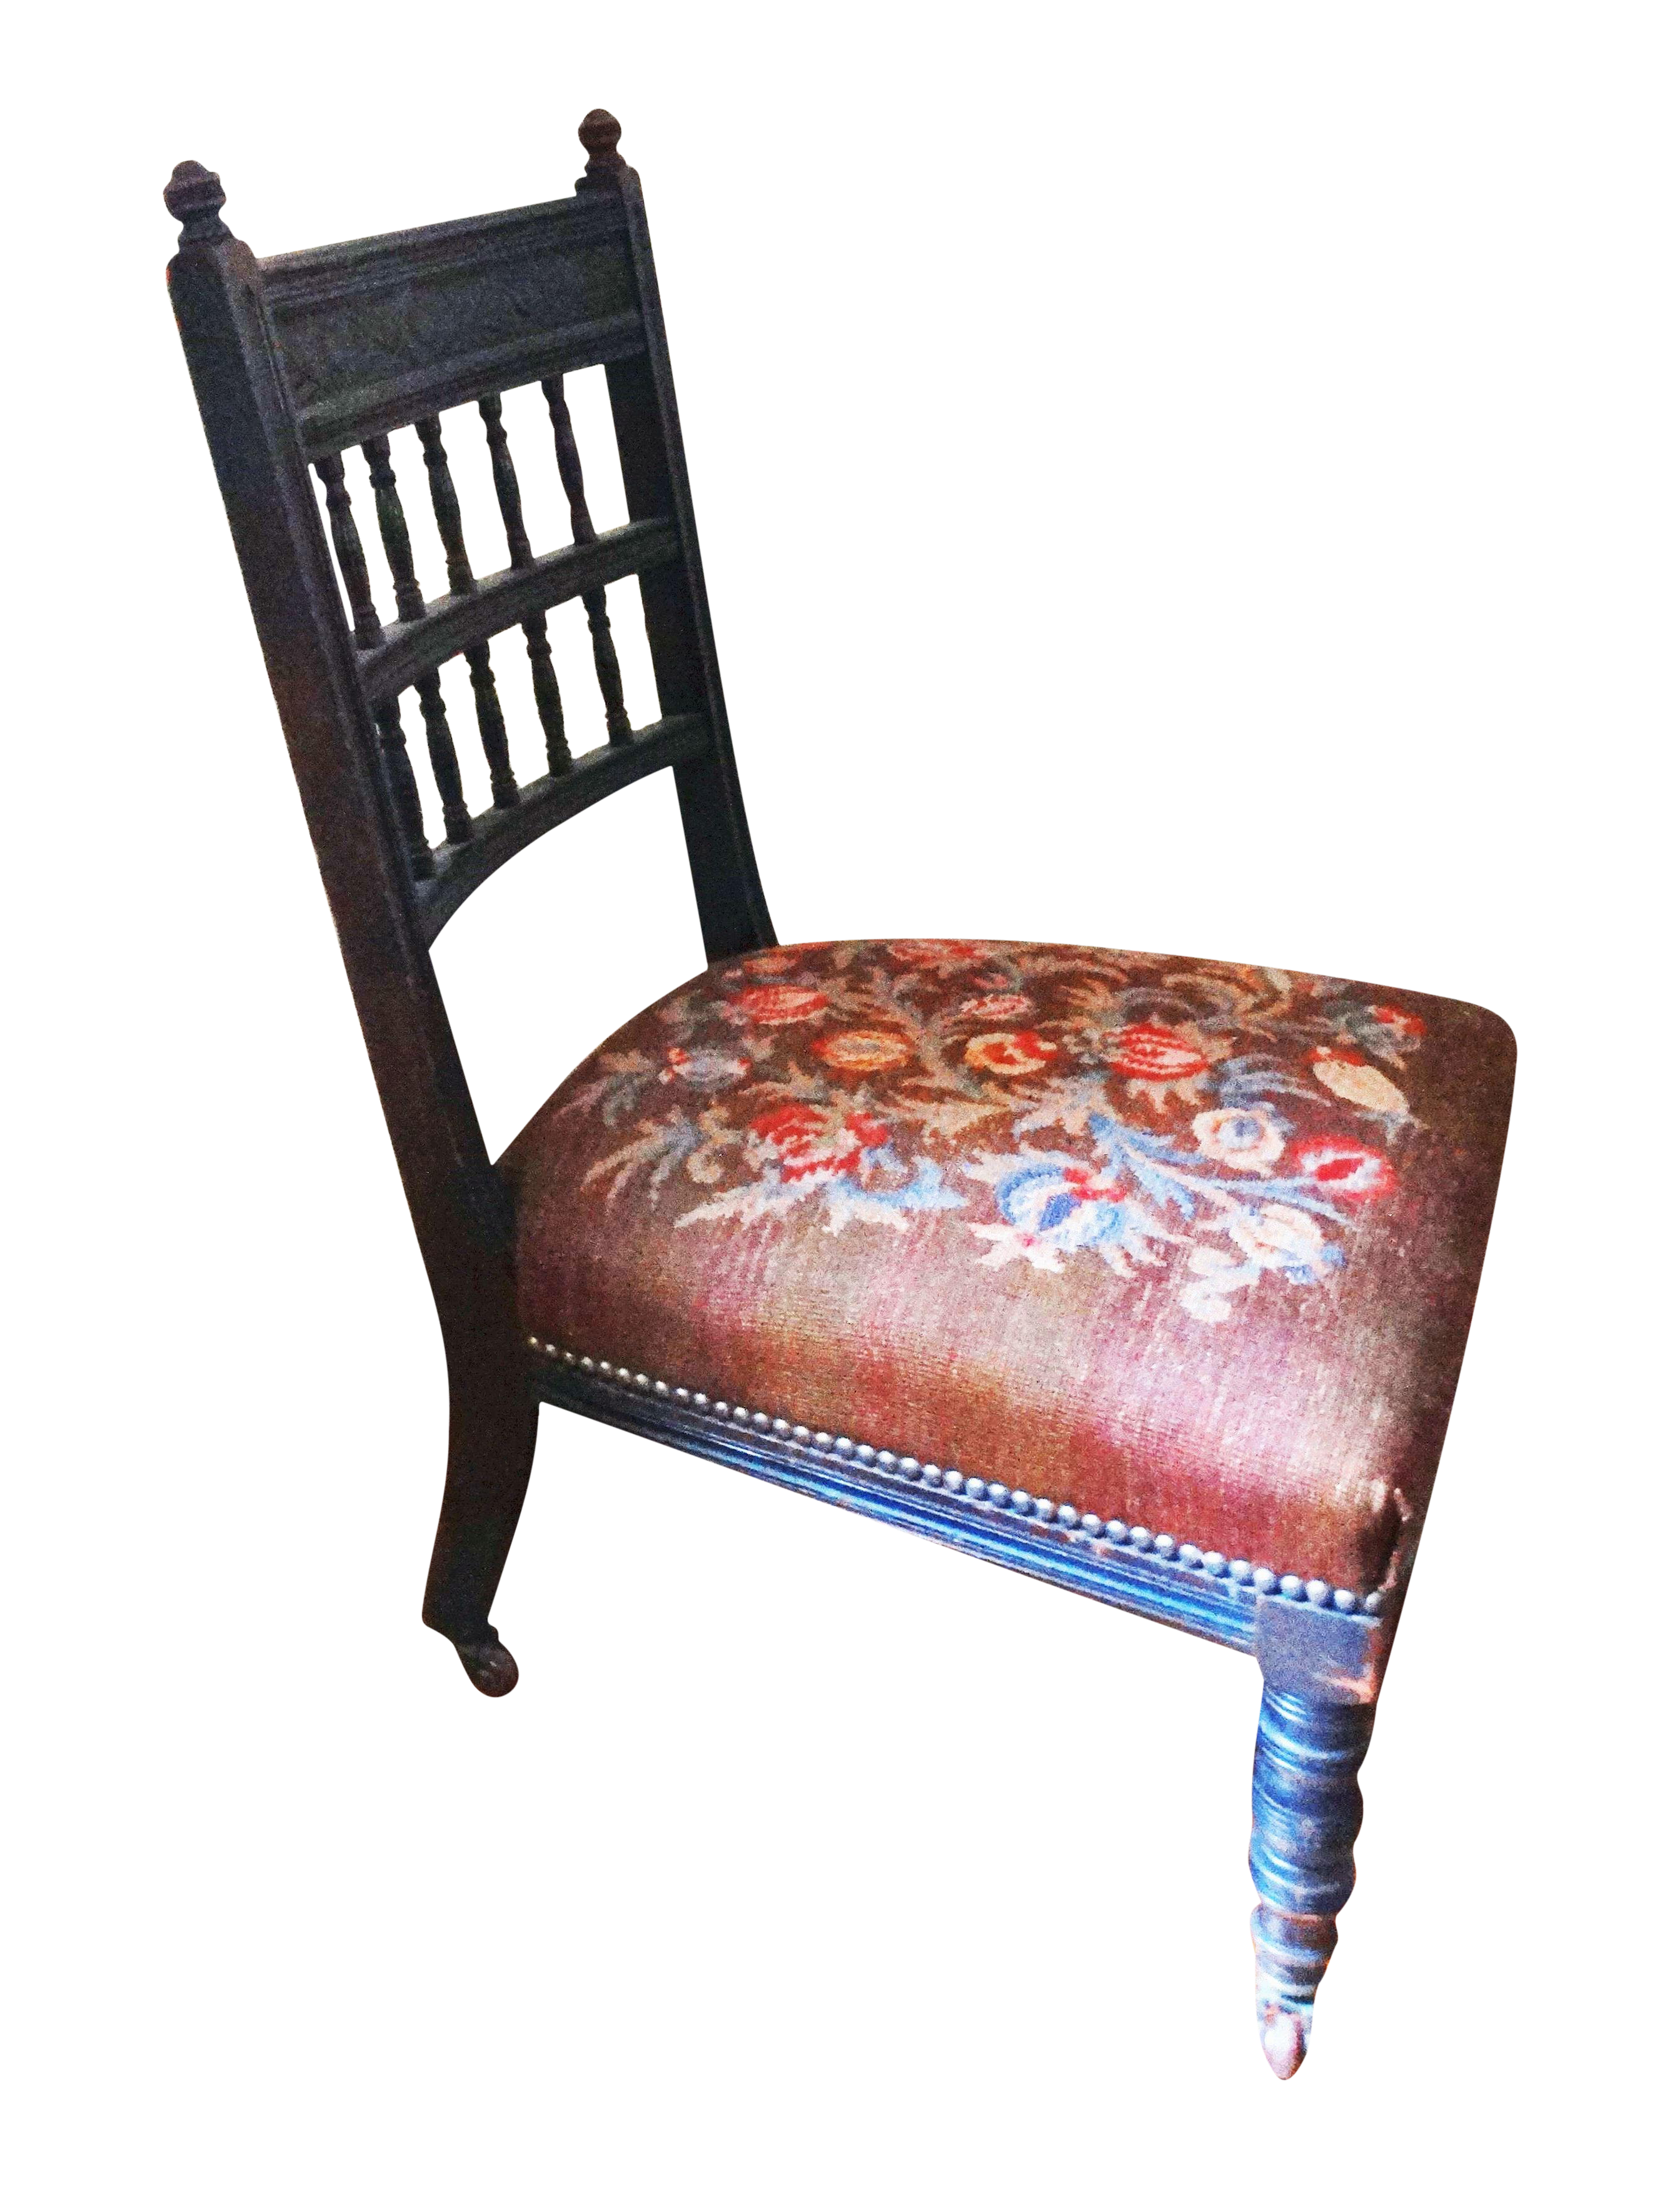 Baroque Needlepoint Victorian Ladies Sewing Chair  : baroque needlepoint victorian ladies sewing chair pomegranate design 4385aspectfitampwidth640ampheight640 from www.chairish.com size 640 x 640 jpeg 35kB